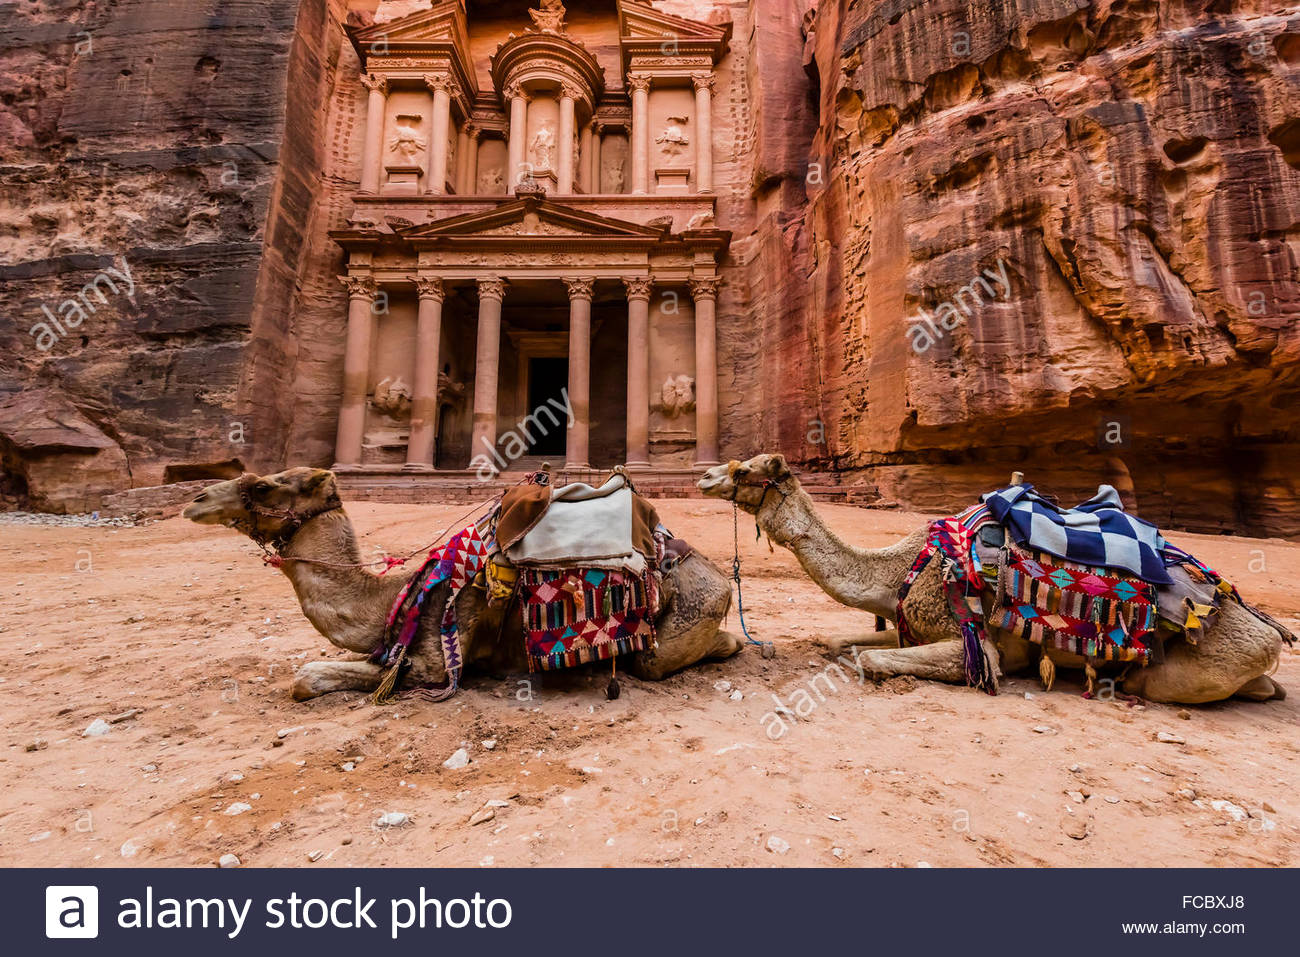 Camels in front of The Treasury (Al-Khazneh), Petra Archaeological Park (a UNESCO World Heritage Site), Petra, Jordan. - Stock Image